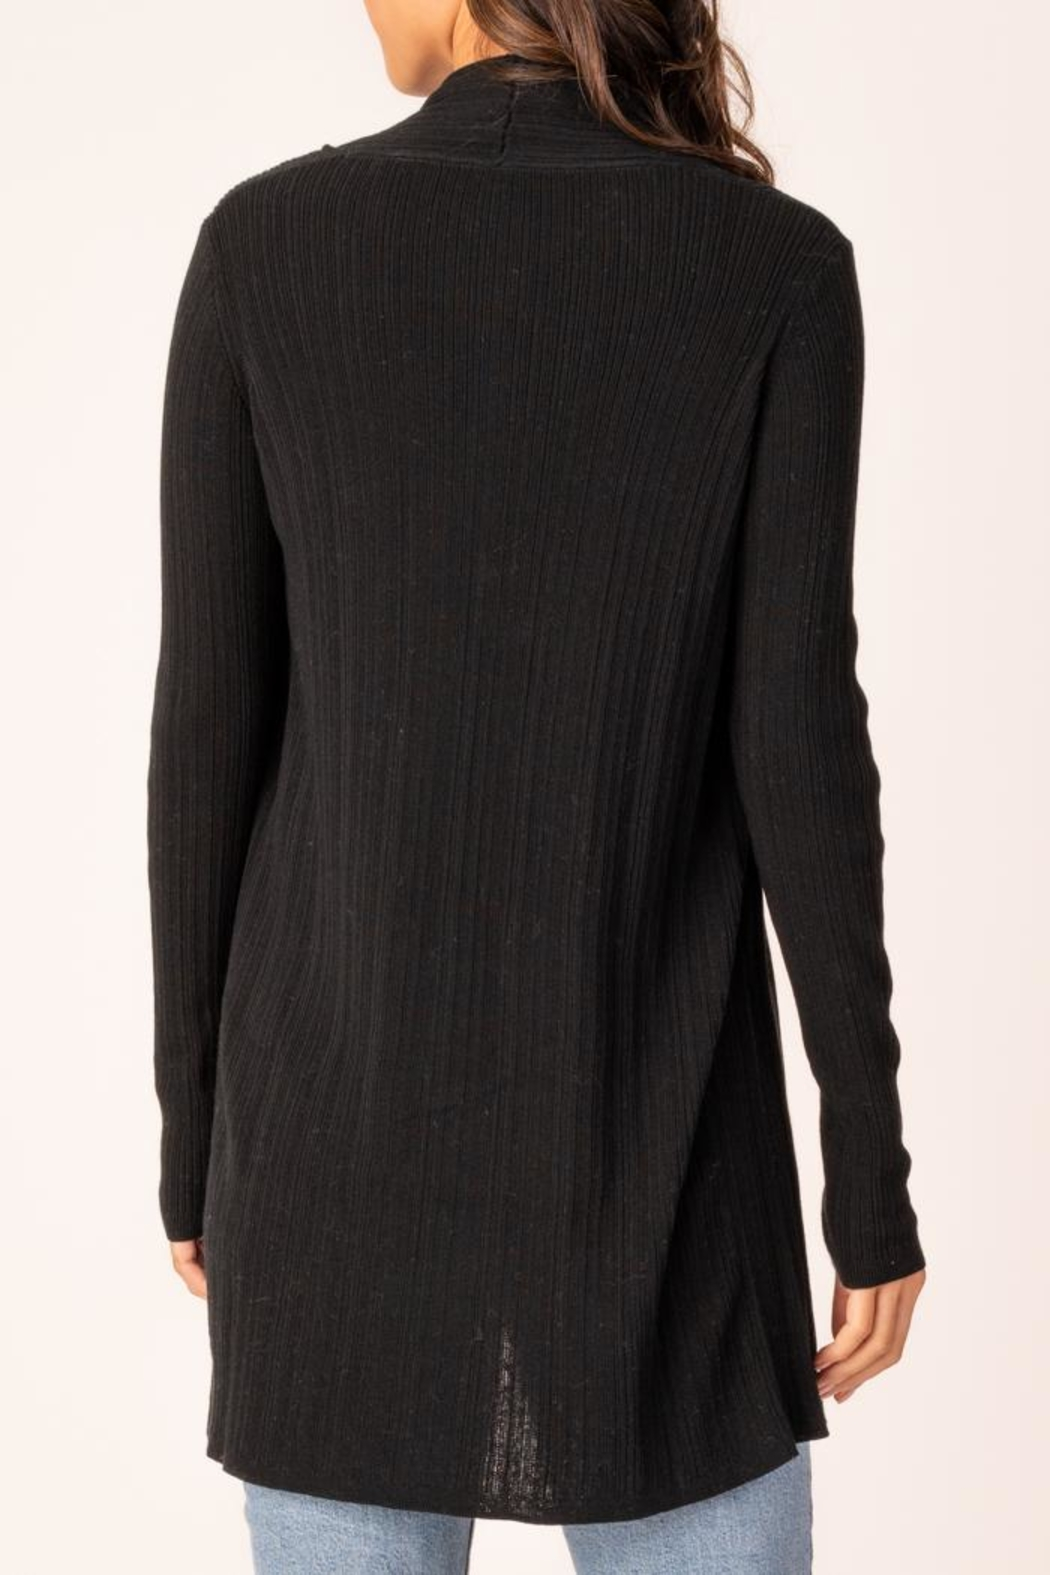 Margaret O'Leary Marcia Rib Duster - Side Cropped Image